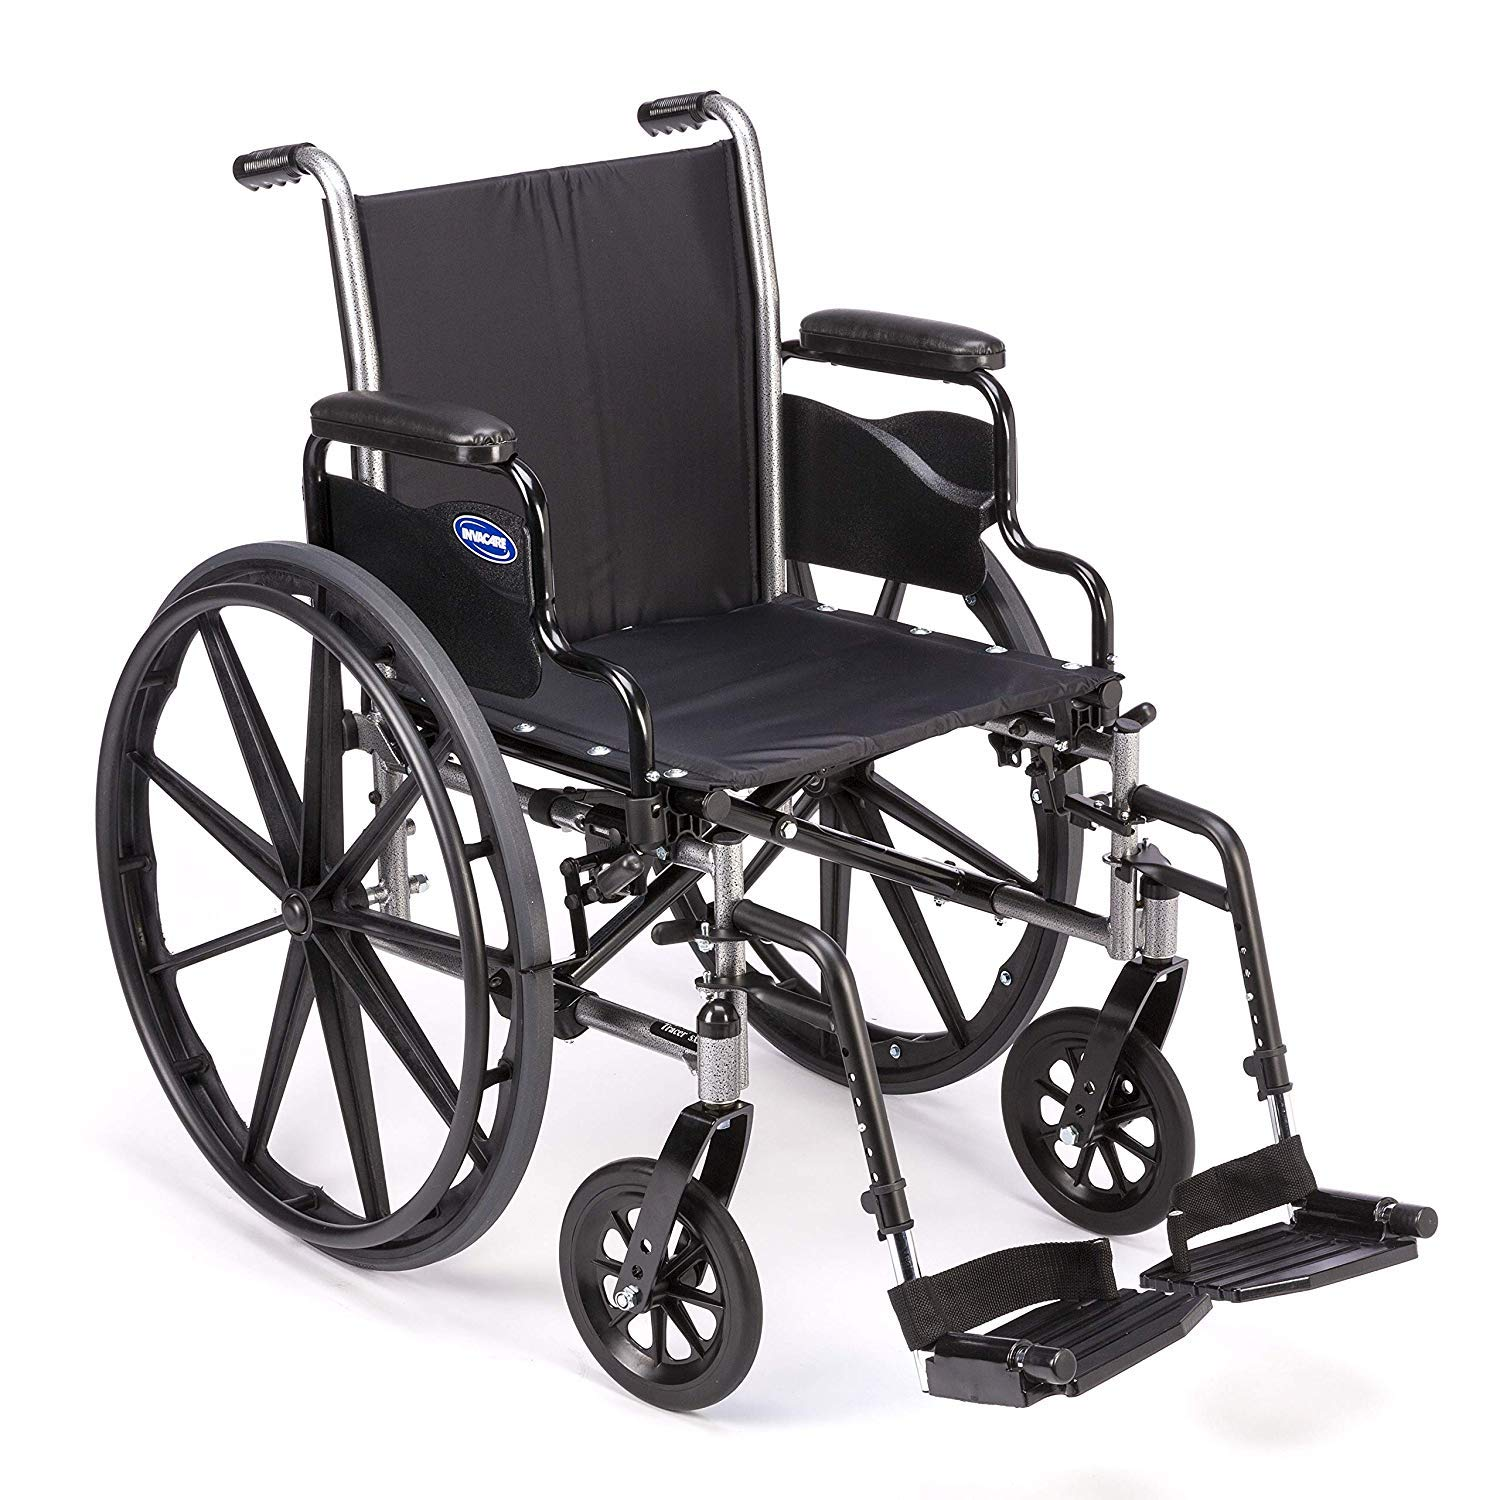 "Invacare Tracer SX5 Wheelchair, with Desk Length Arms and T93HCP Hemi Footrests with Heel Loops, 20"" Seat Width 71zuA7M5CzL"